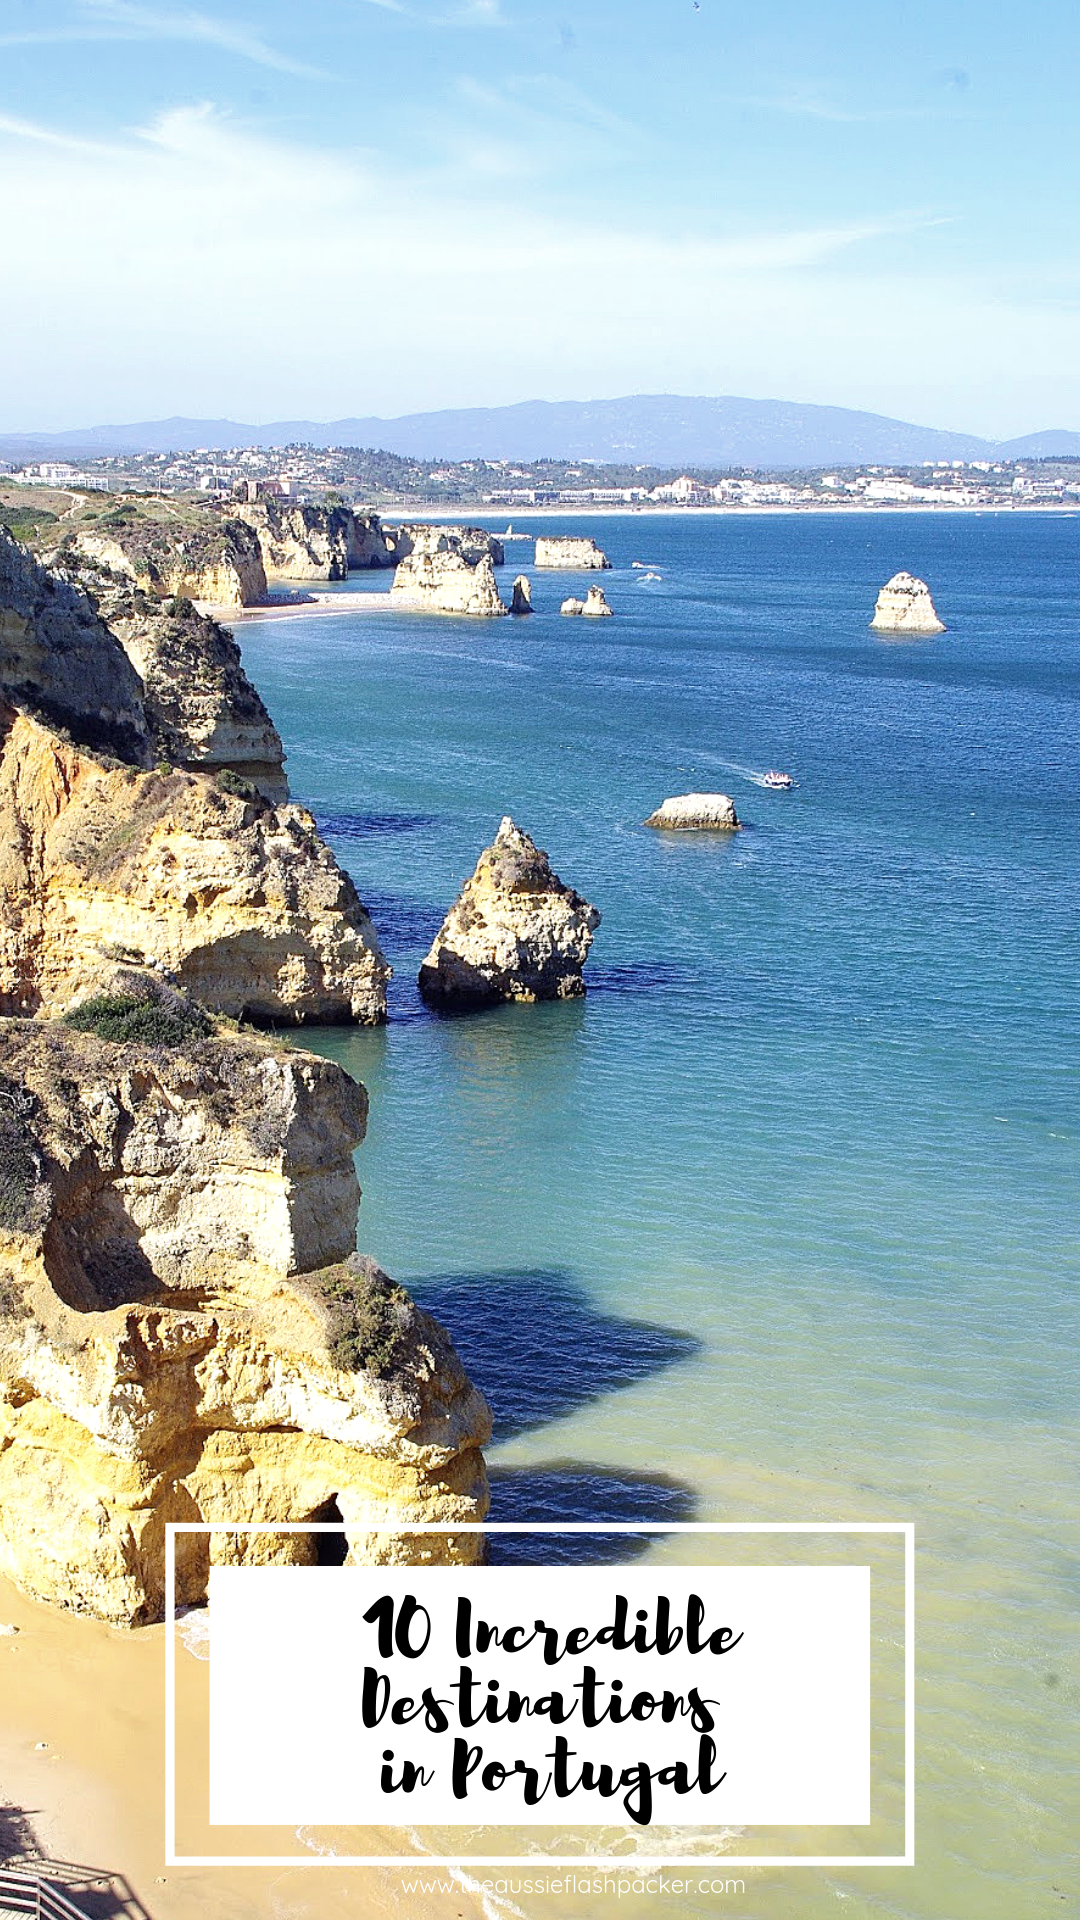 10 Incredible Destinations in Portugal